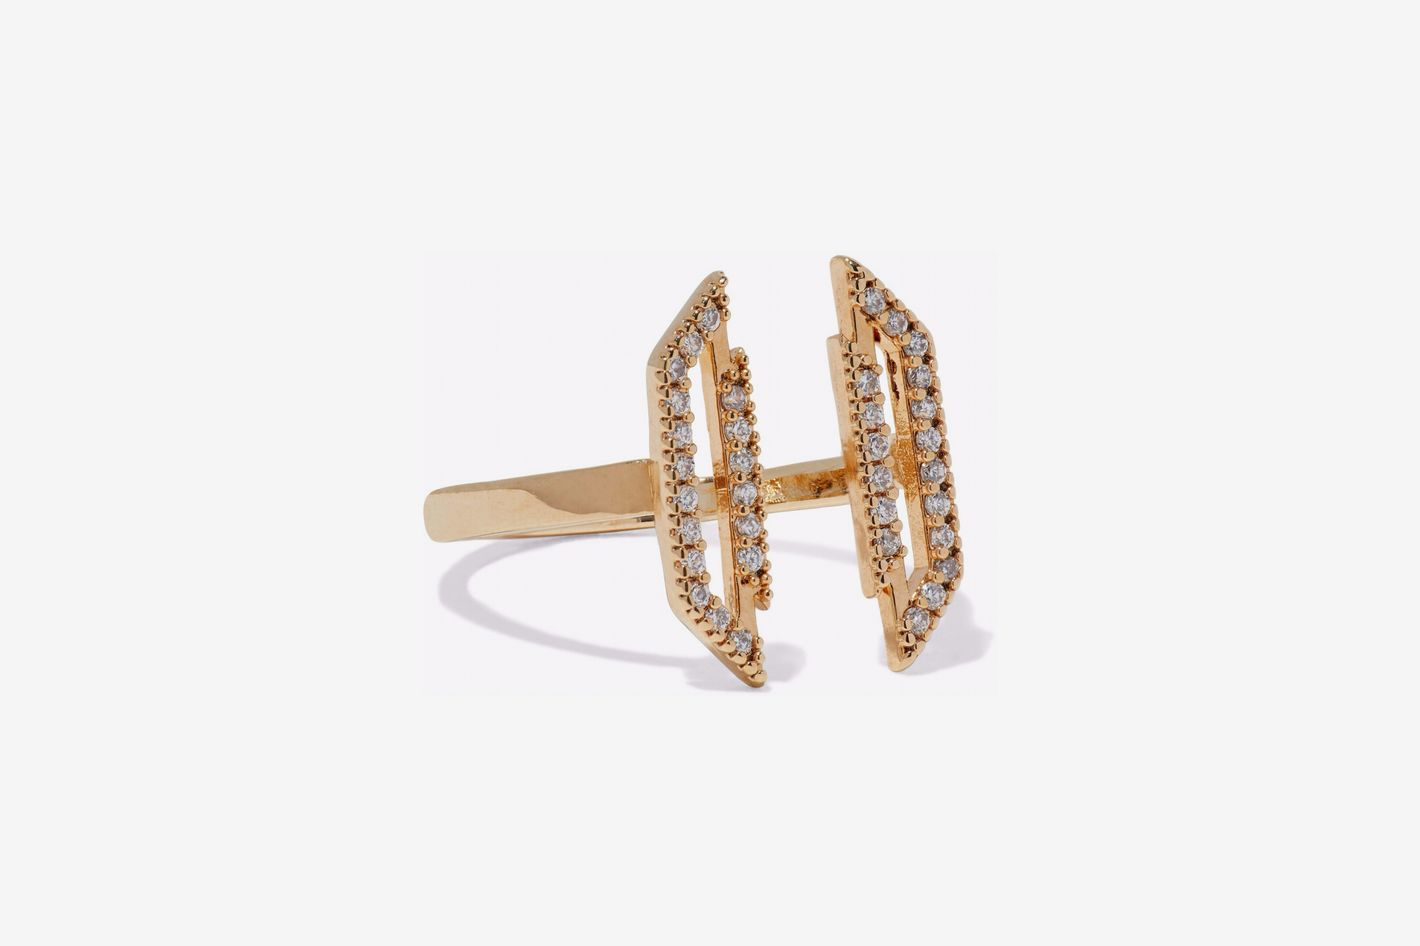 Astrid & Miyu 14-Karat Gold-Plated Ring